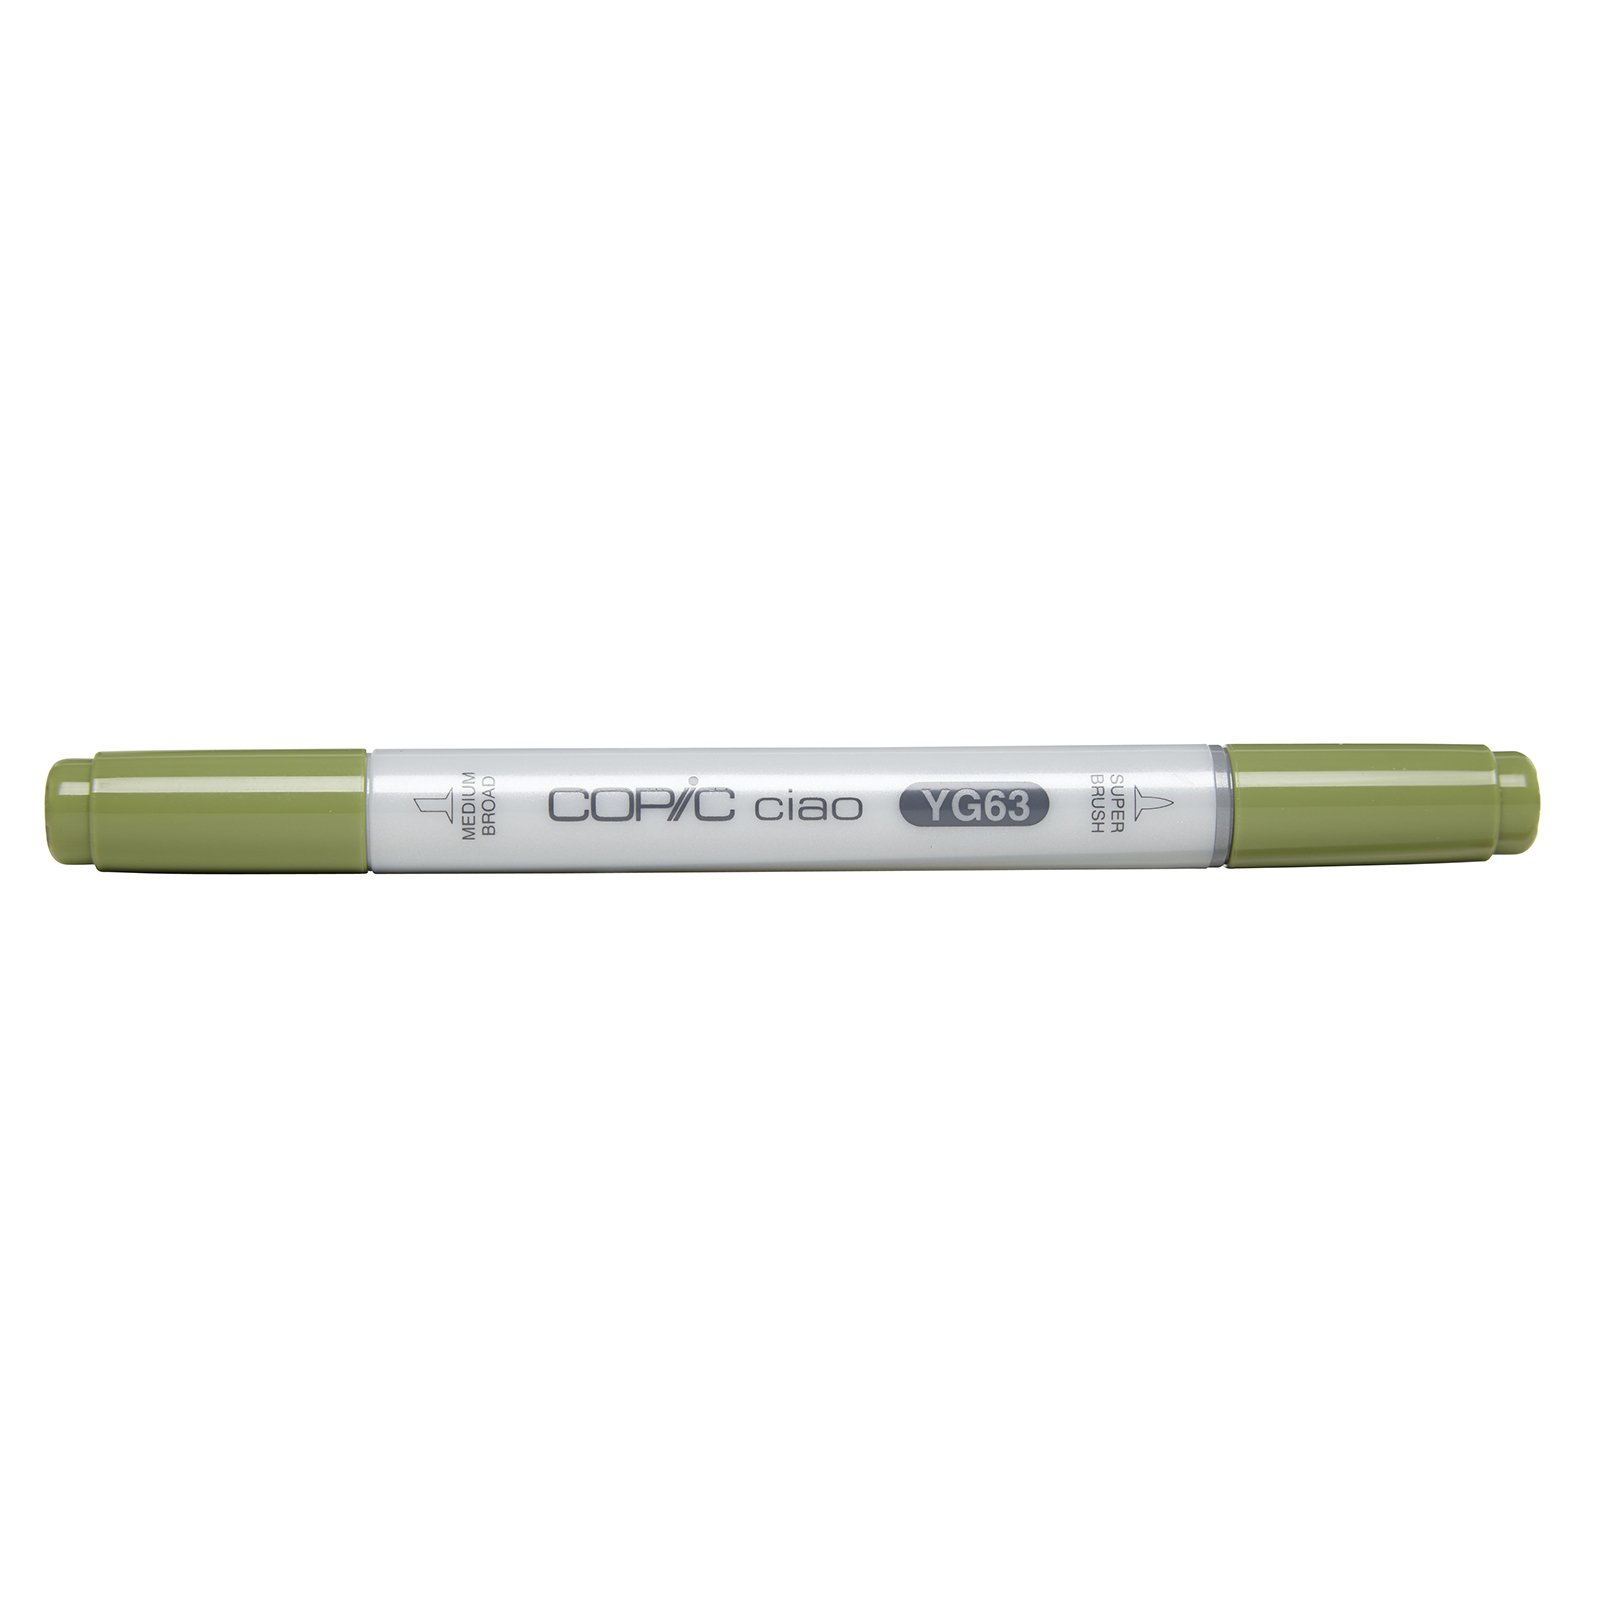 Copic Ciao Markers, Pea Green